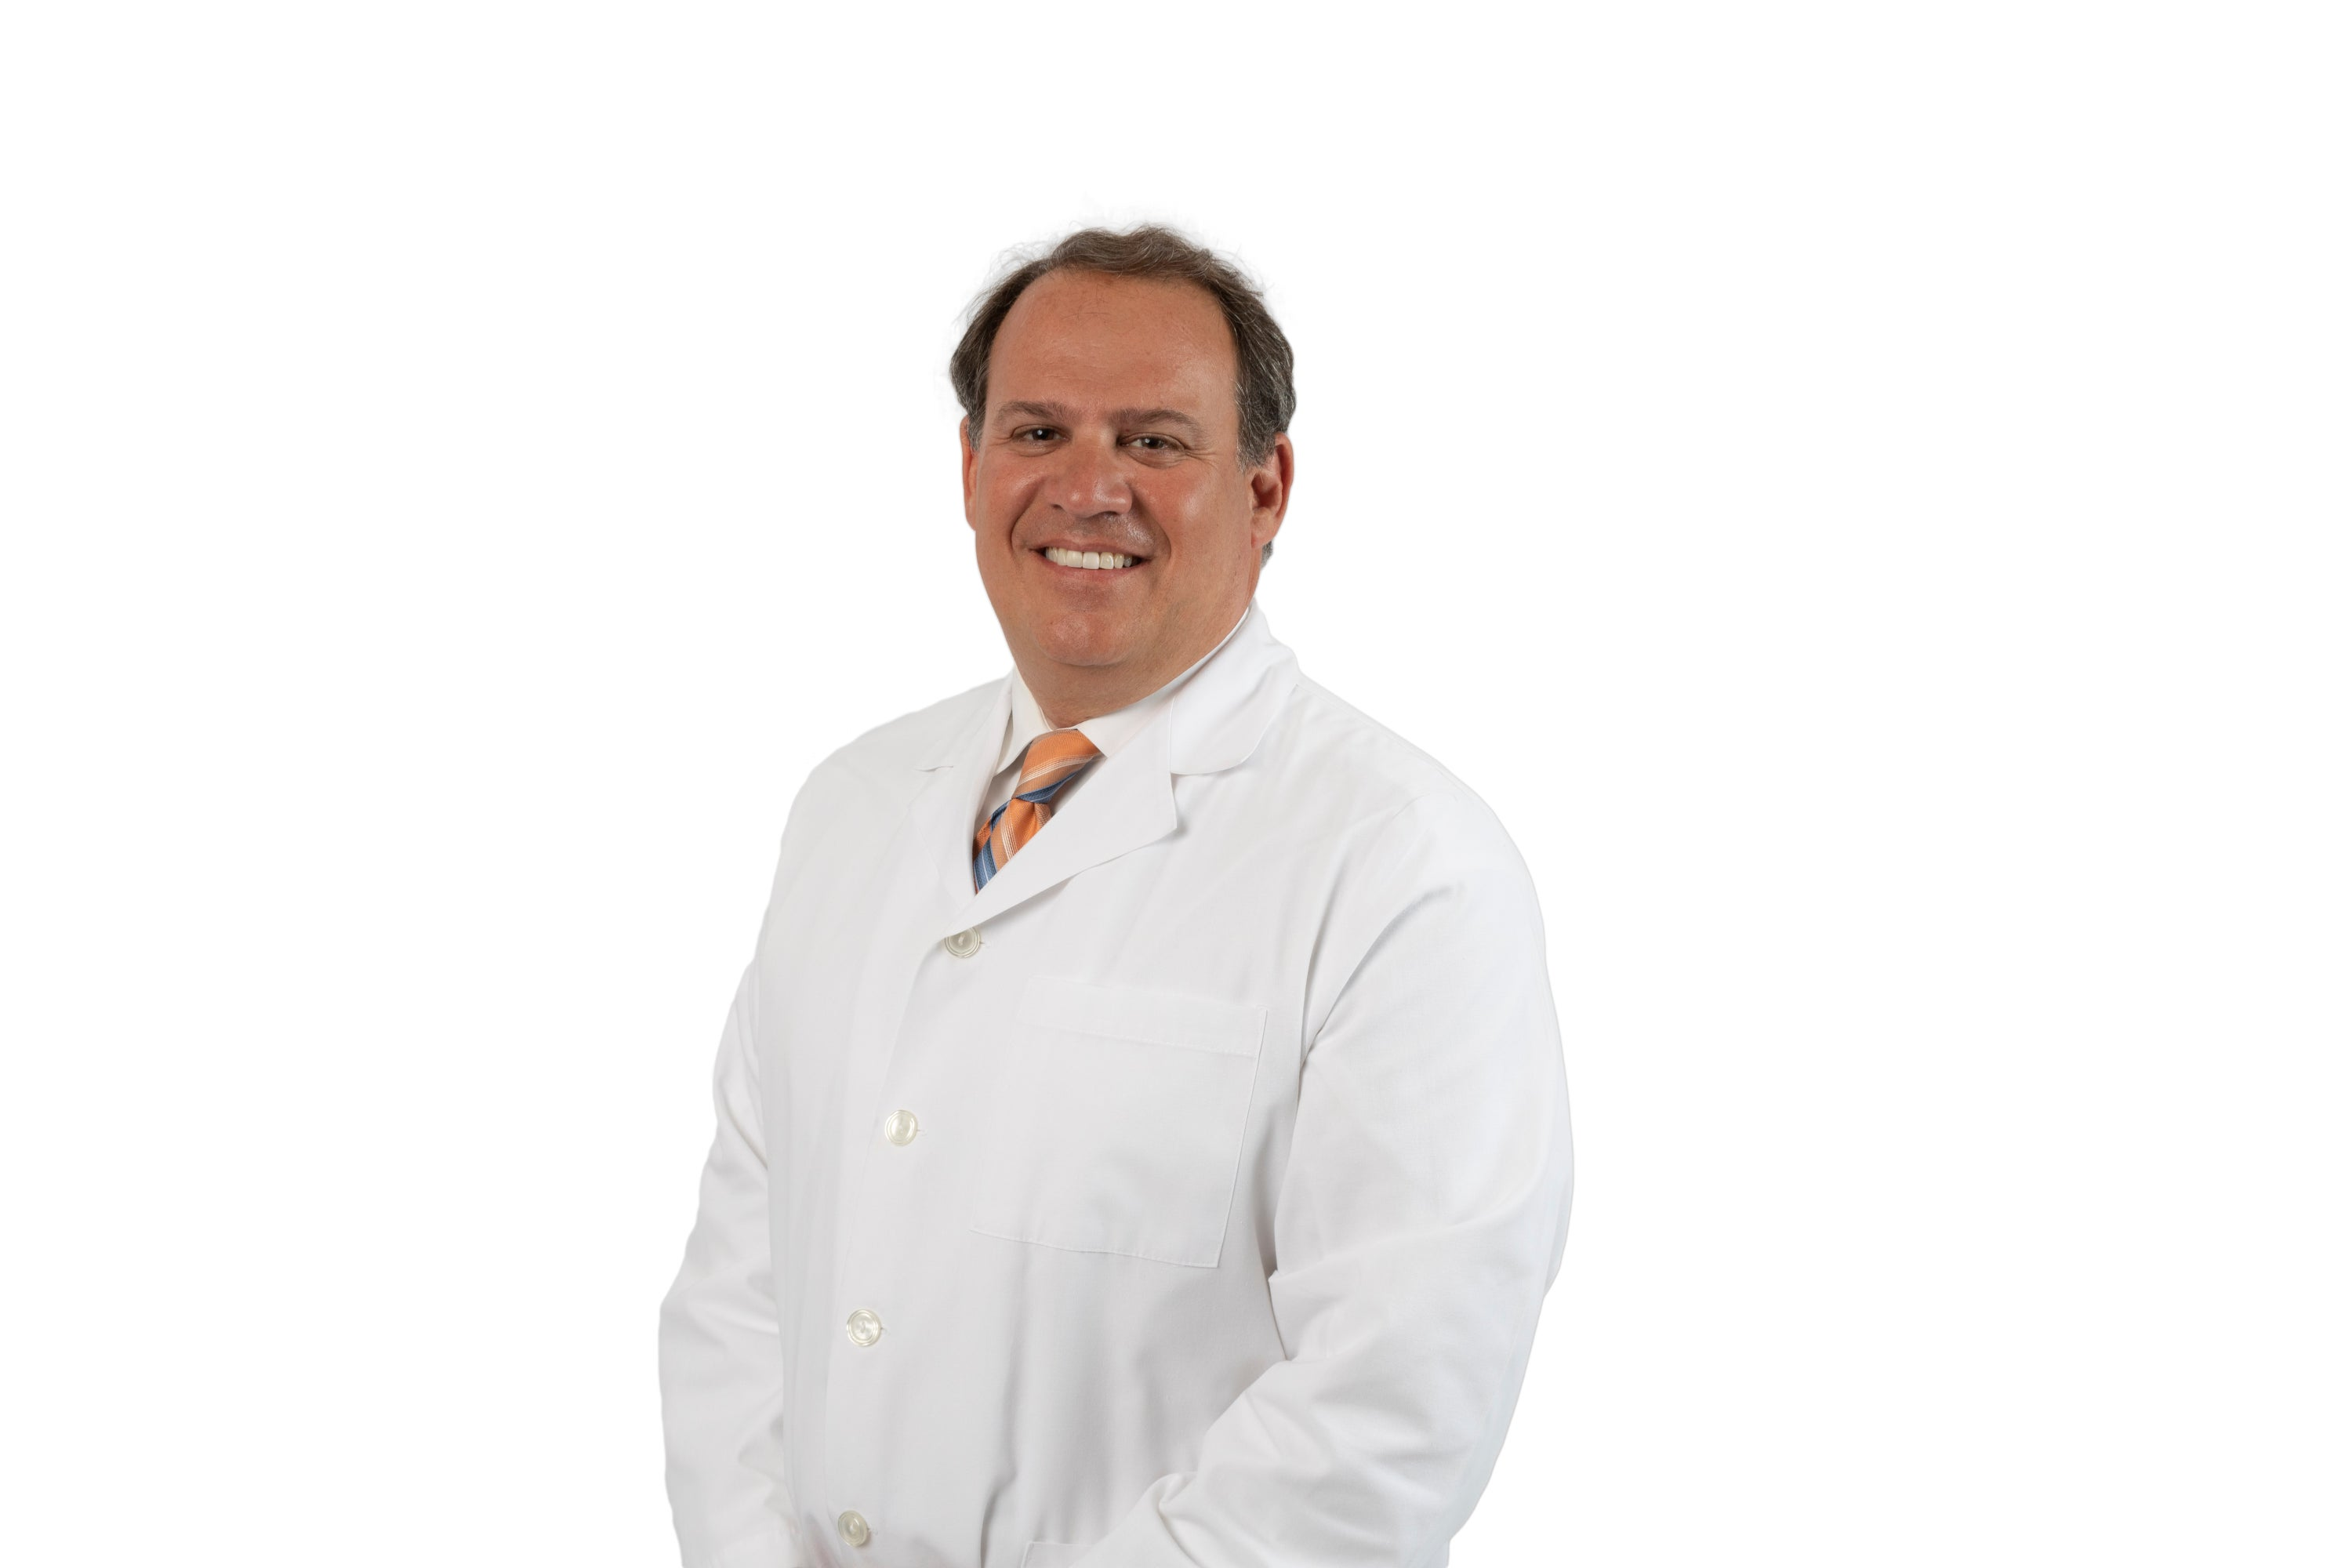 Cardiothoracic surgeon Dr. Russell Ronson